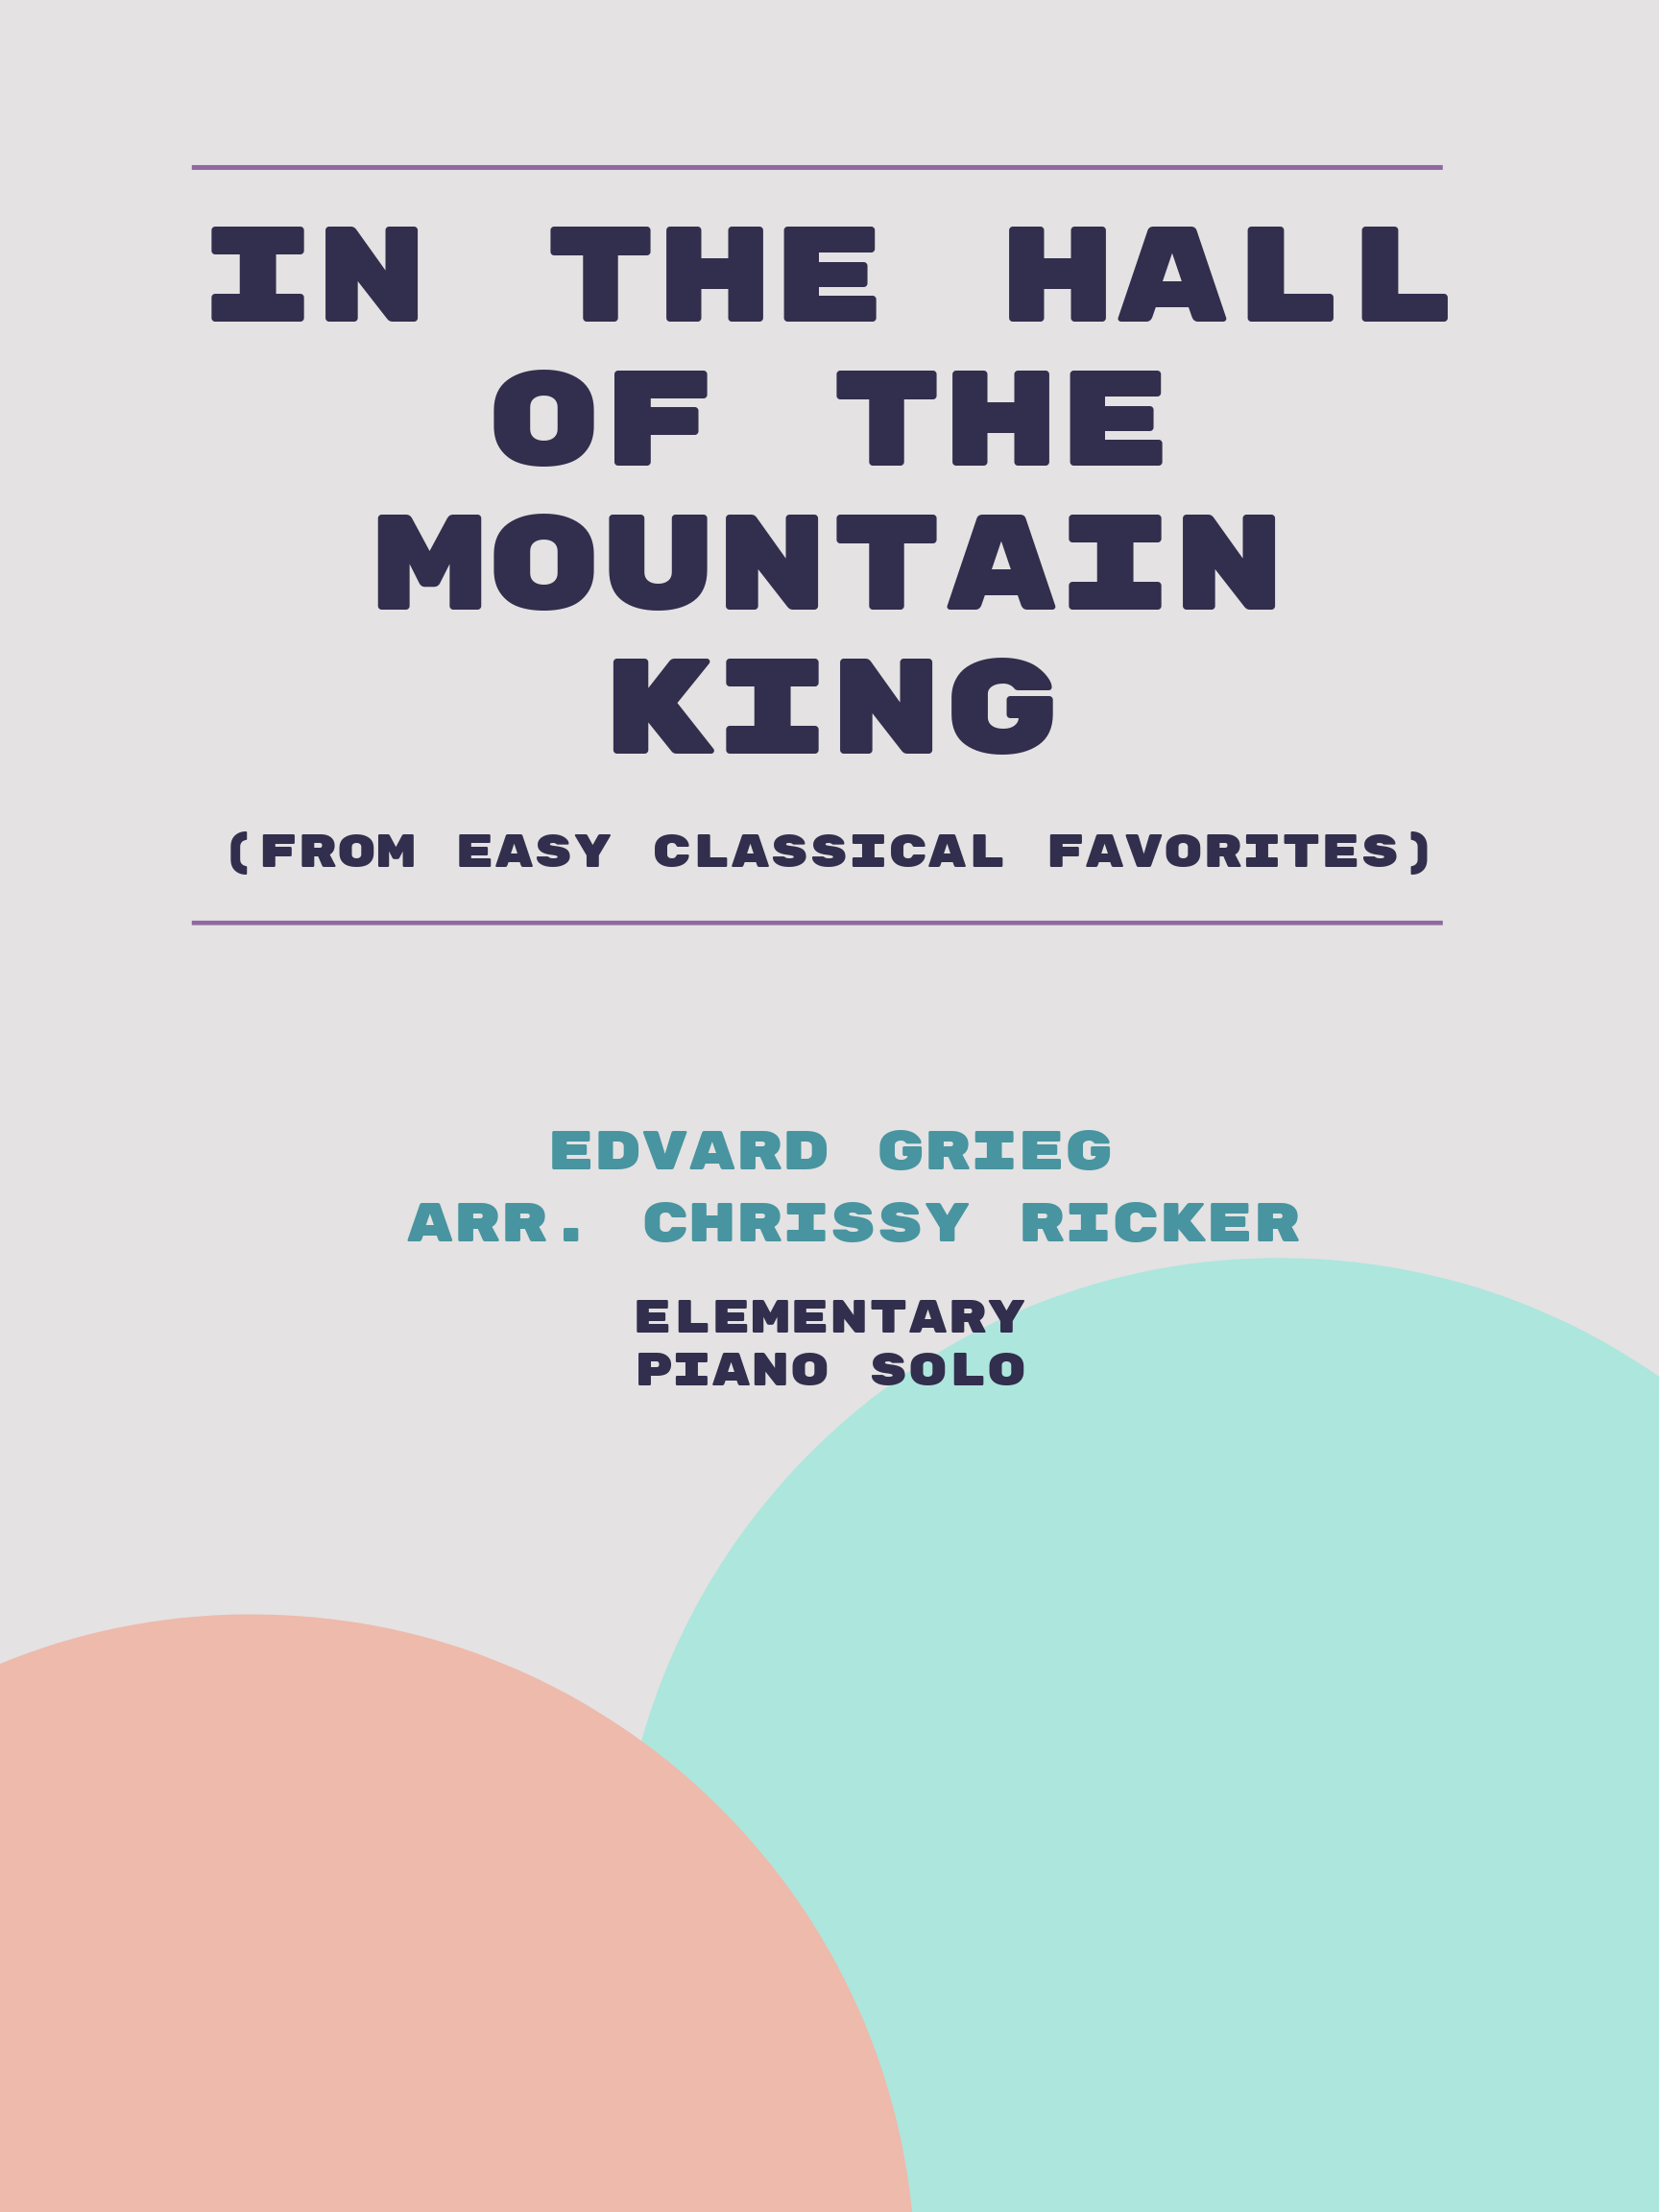 In the Hall of the Mountain King by Edvard Grieg